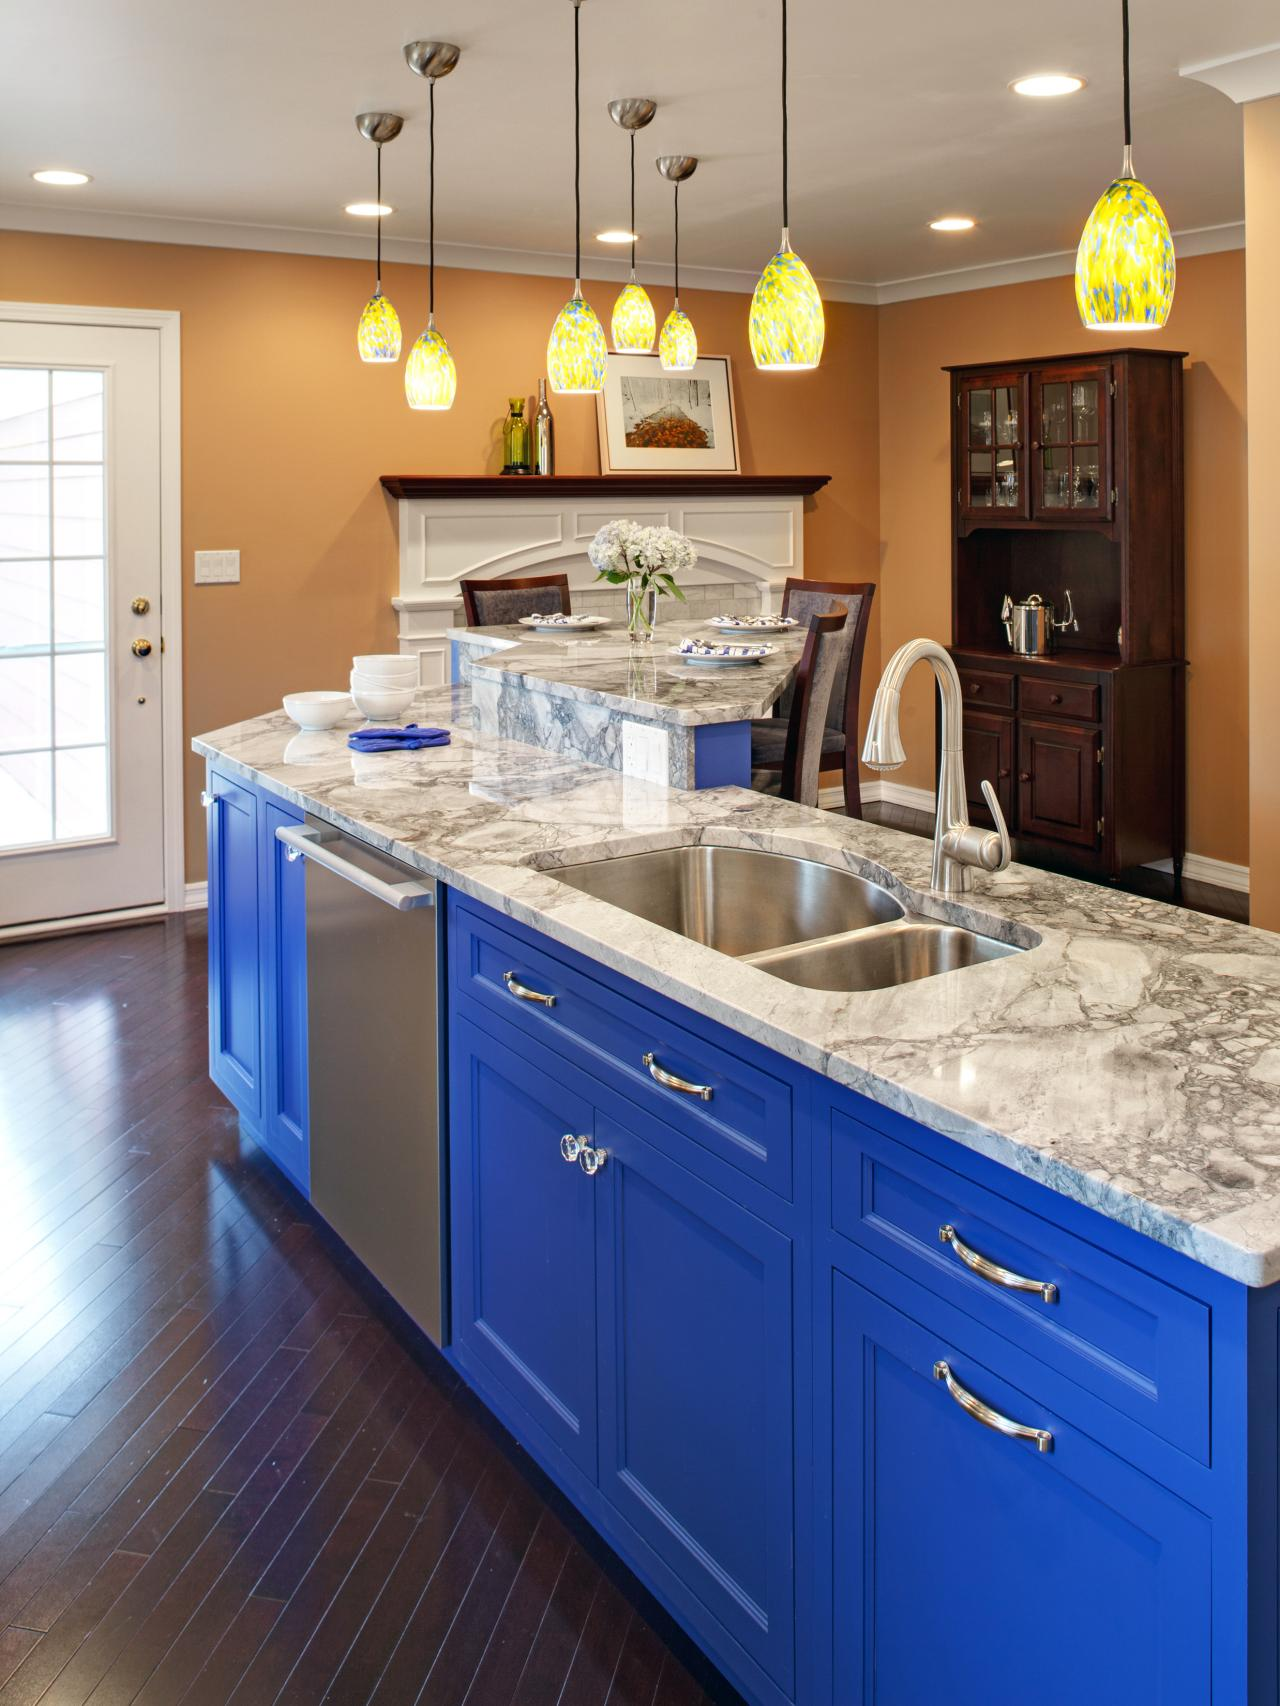 S Kitchen Cabinets Beauteous Shaker Kitchen Cabinets Pictures Ideas & Tips From Hgtv  Hgtv Inspiration Design